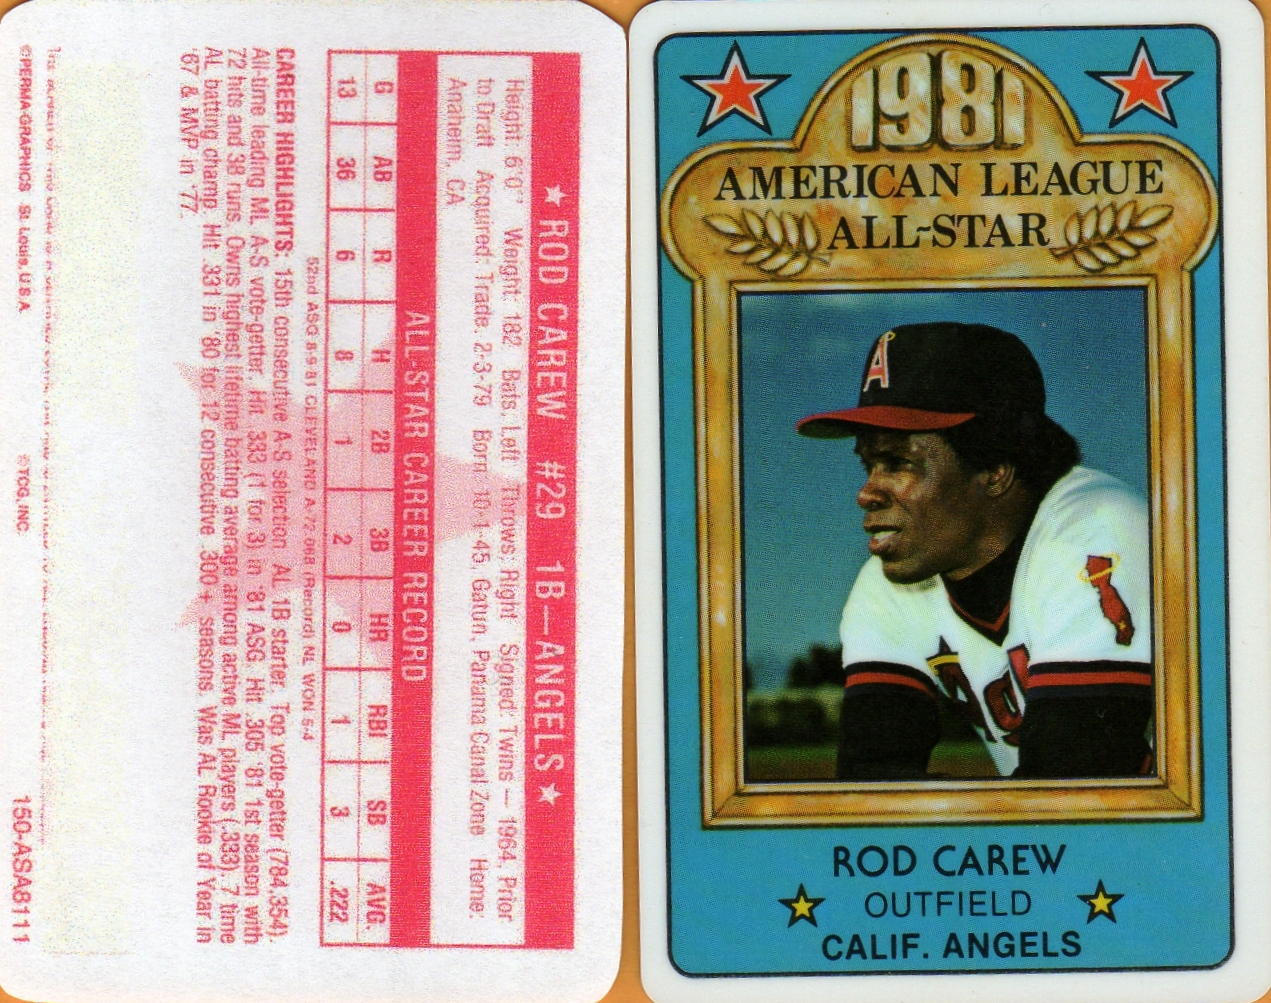 1981 Perma Graphic All-Star Credit Card